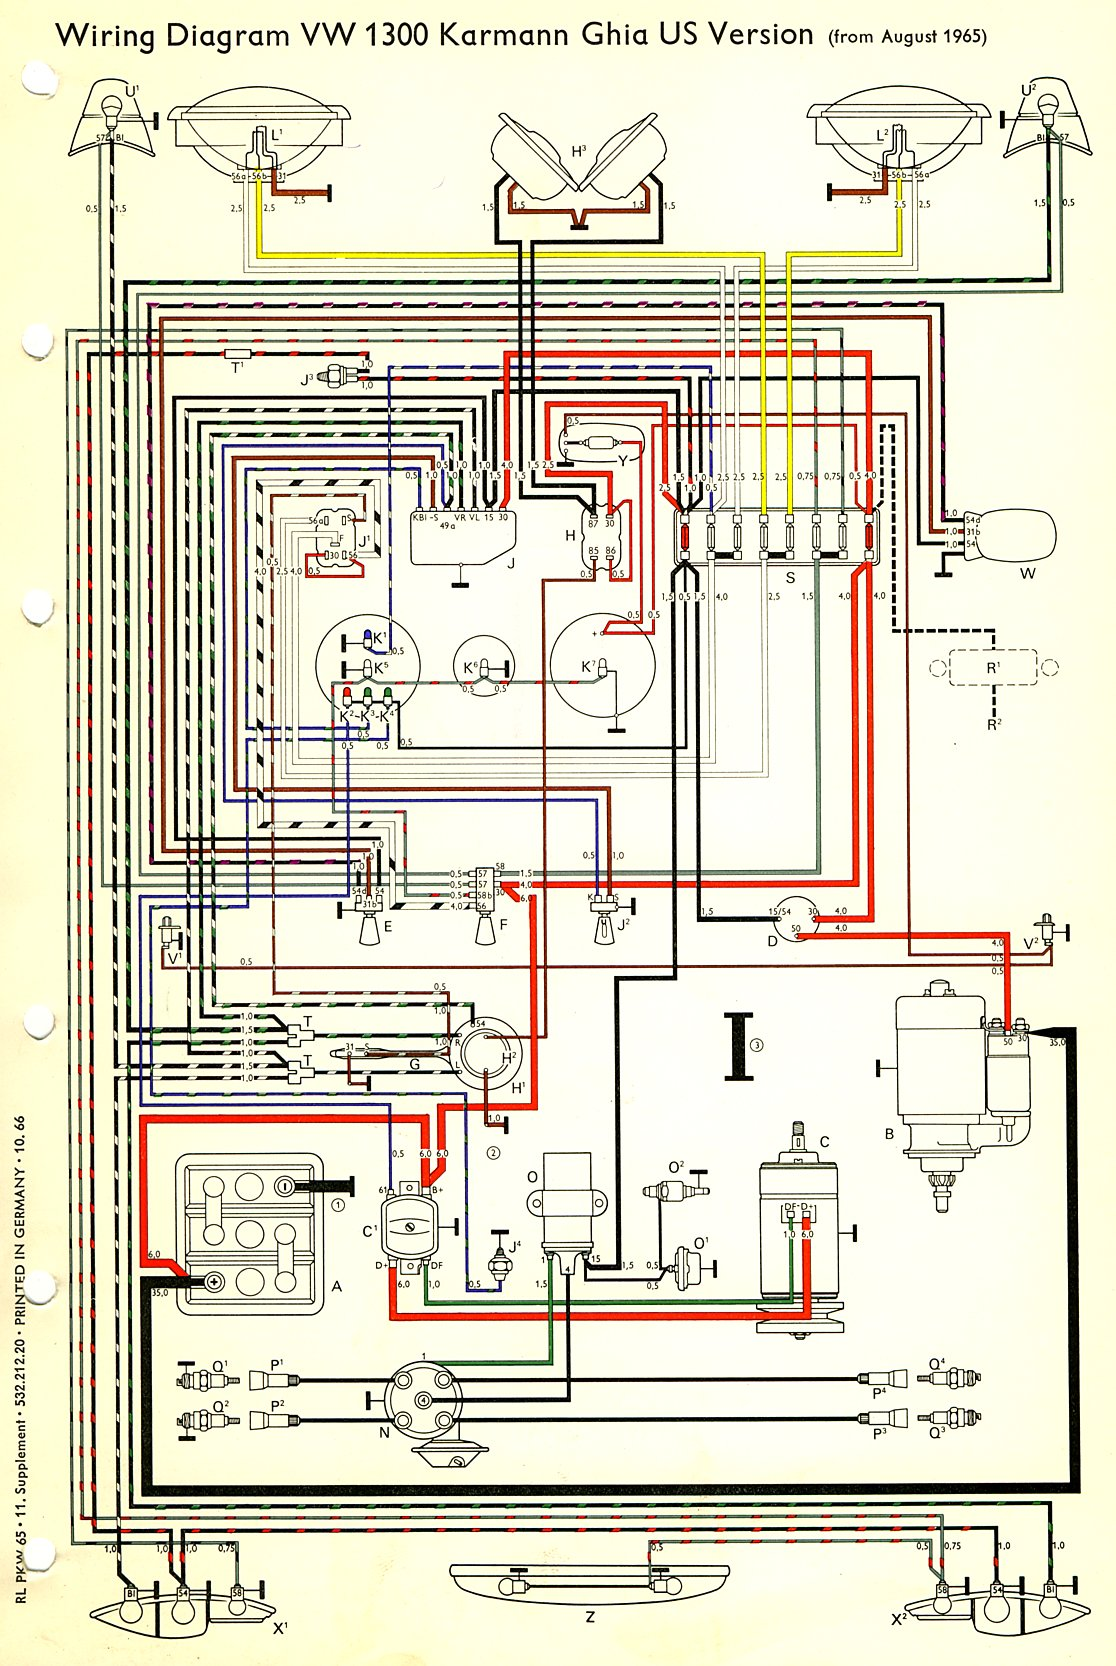 ghia_66_USA thesamba com karmann ghia wiring diagrams 1966 c10 wiring diagram at virtualis.co